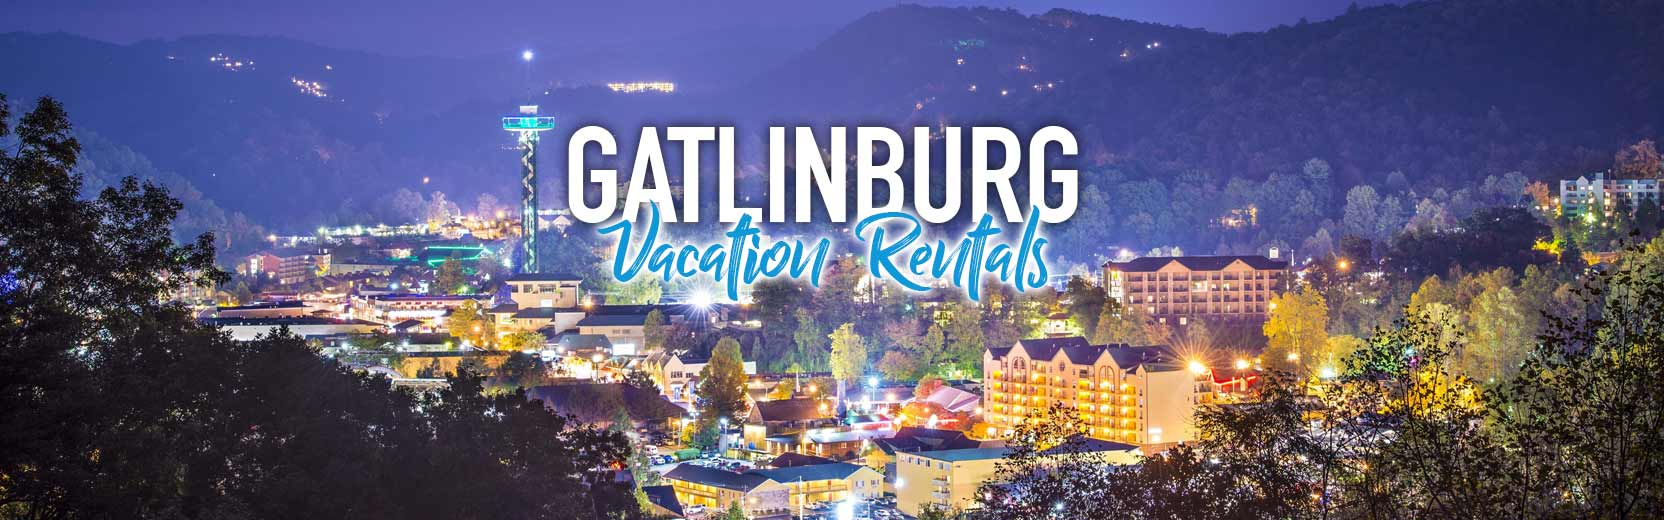 Gatlinburg Cabin Rentals Gatlinburg Luxury Cabins